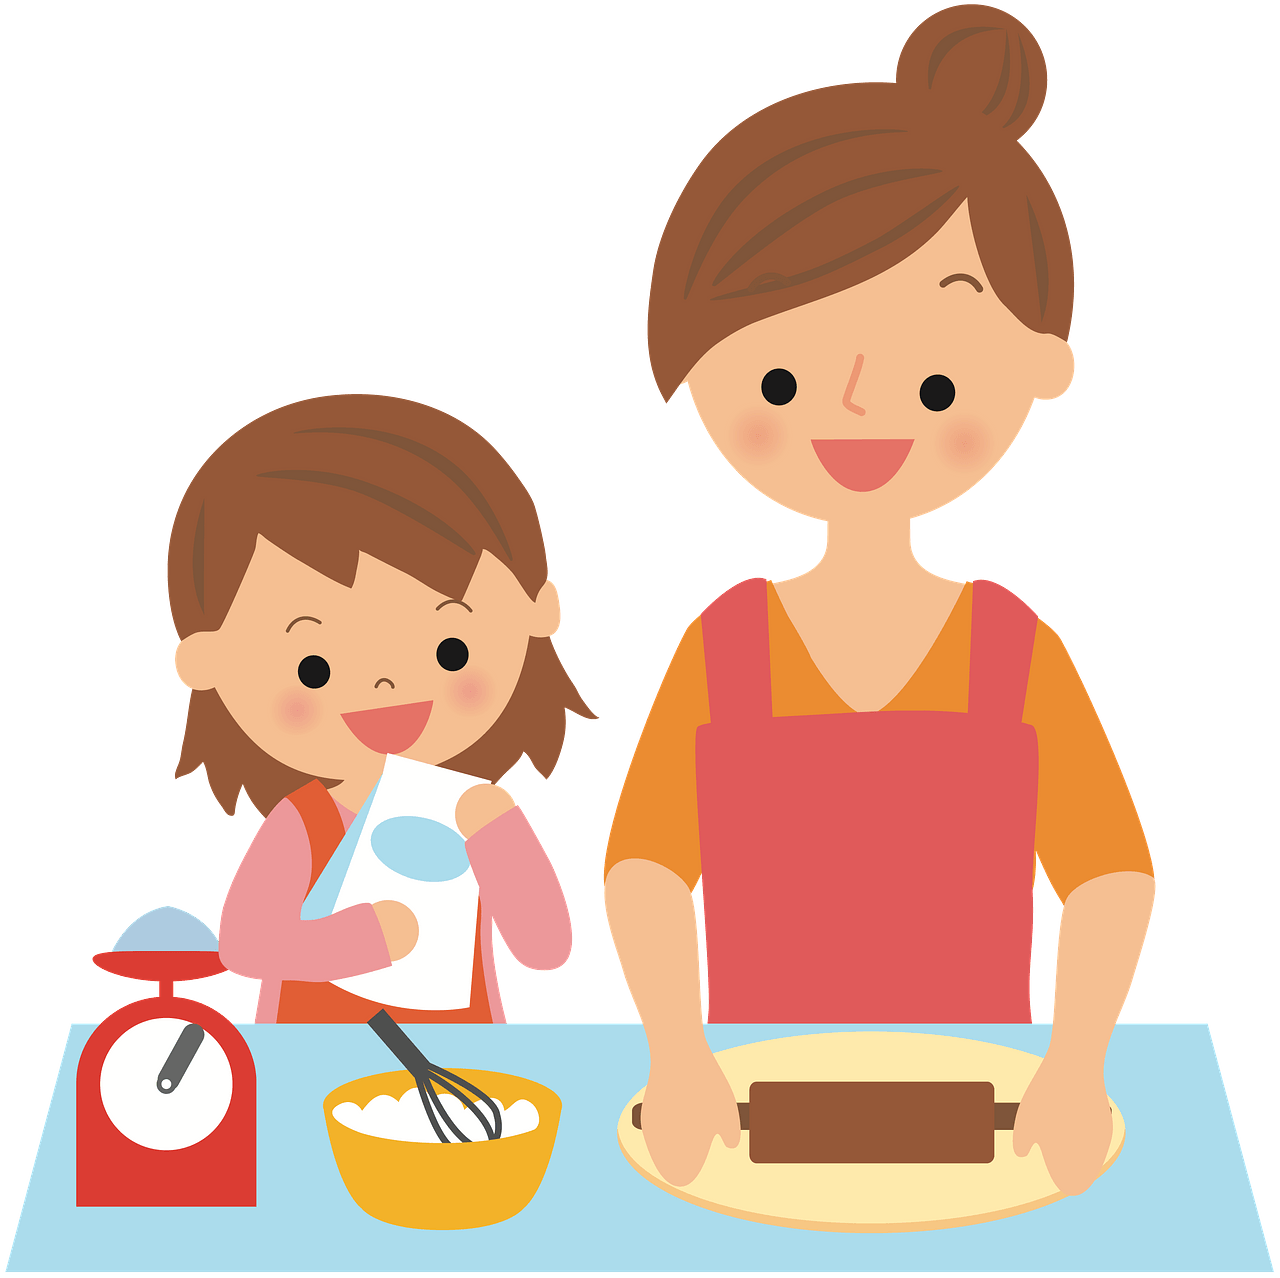 Baking with mother clipart. Free download..